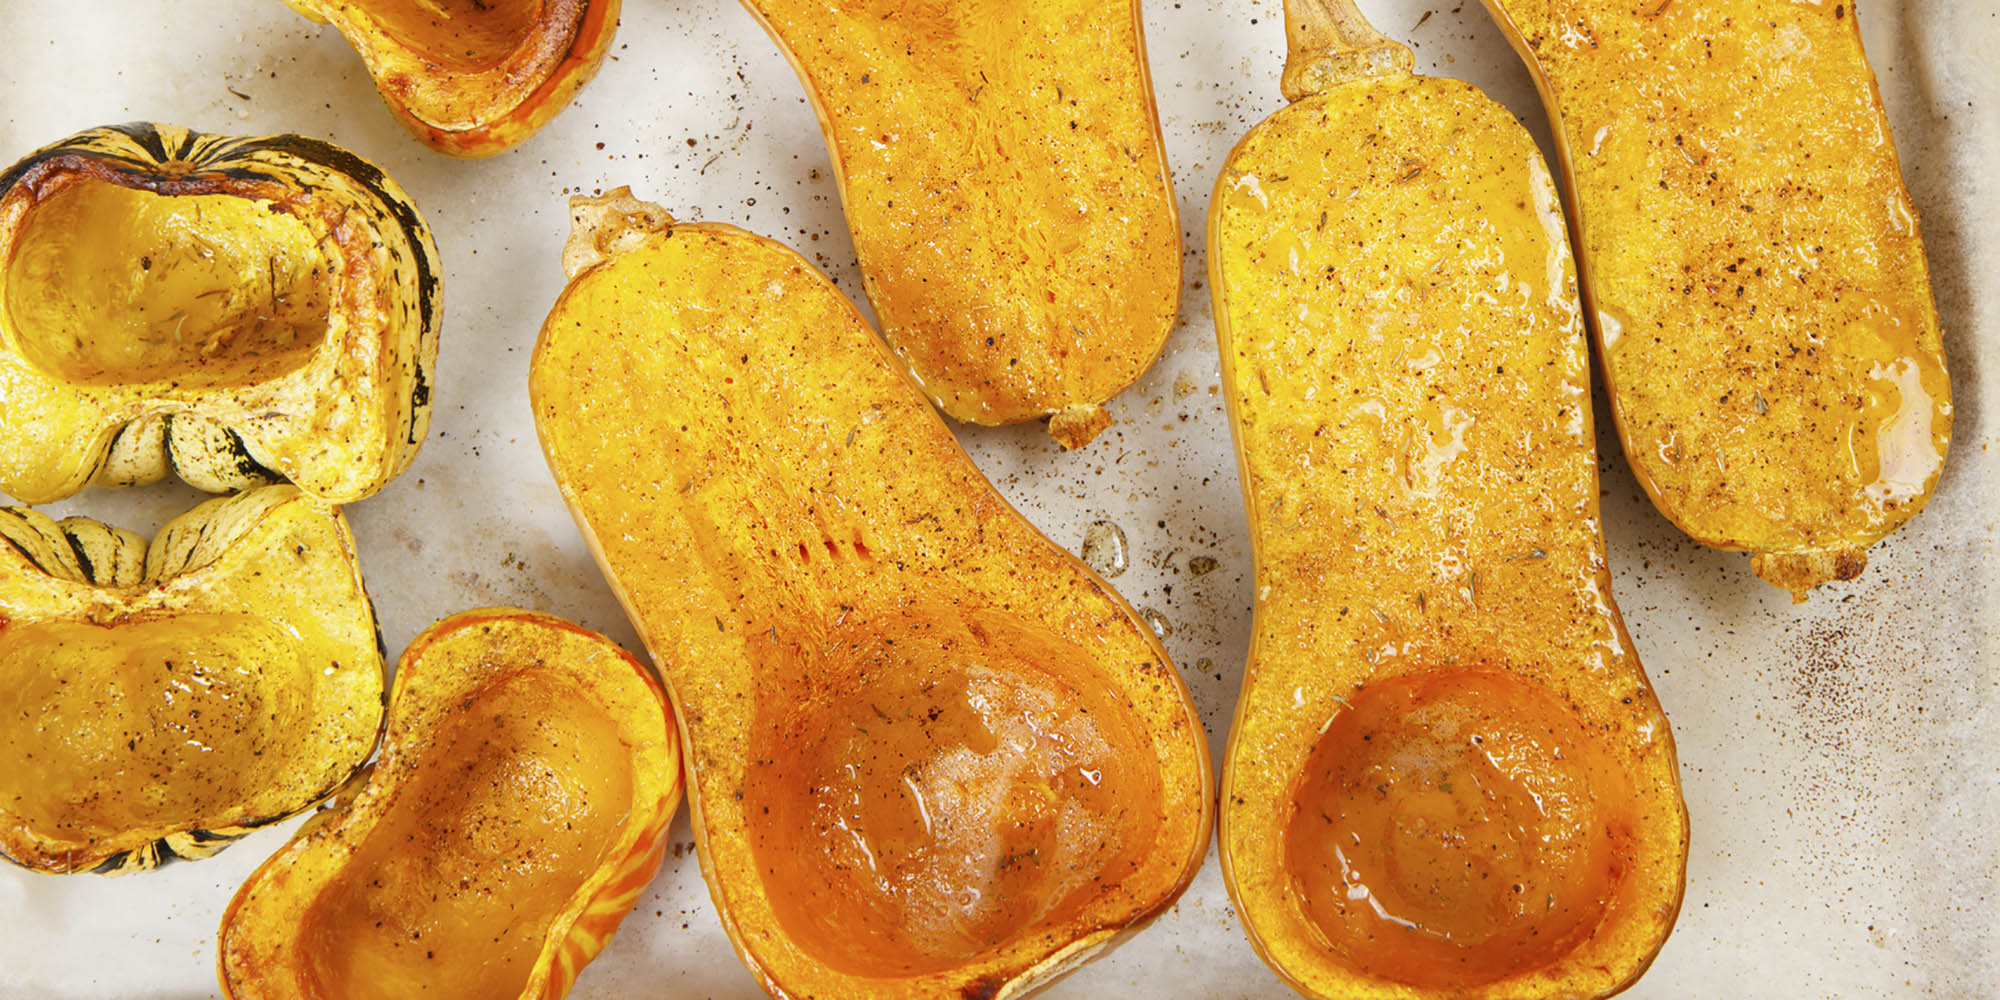 How to Make Lower-Calorie Versions of Your Favorite Fall Flavors